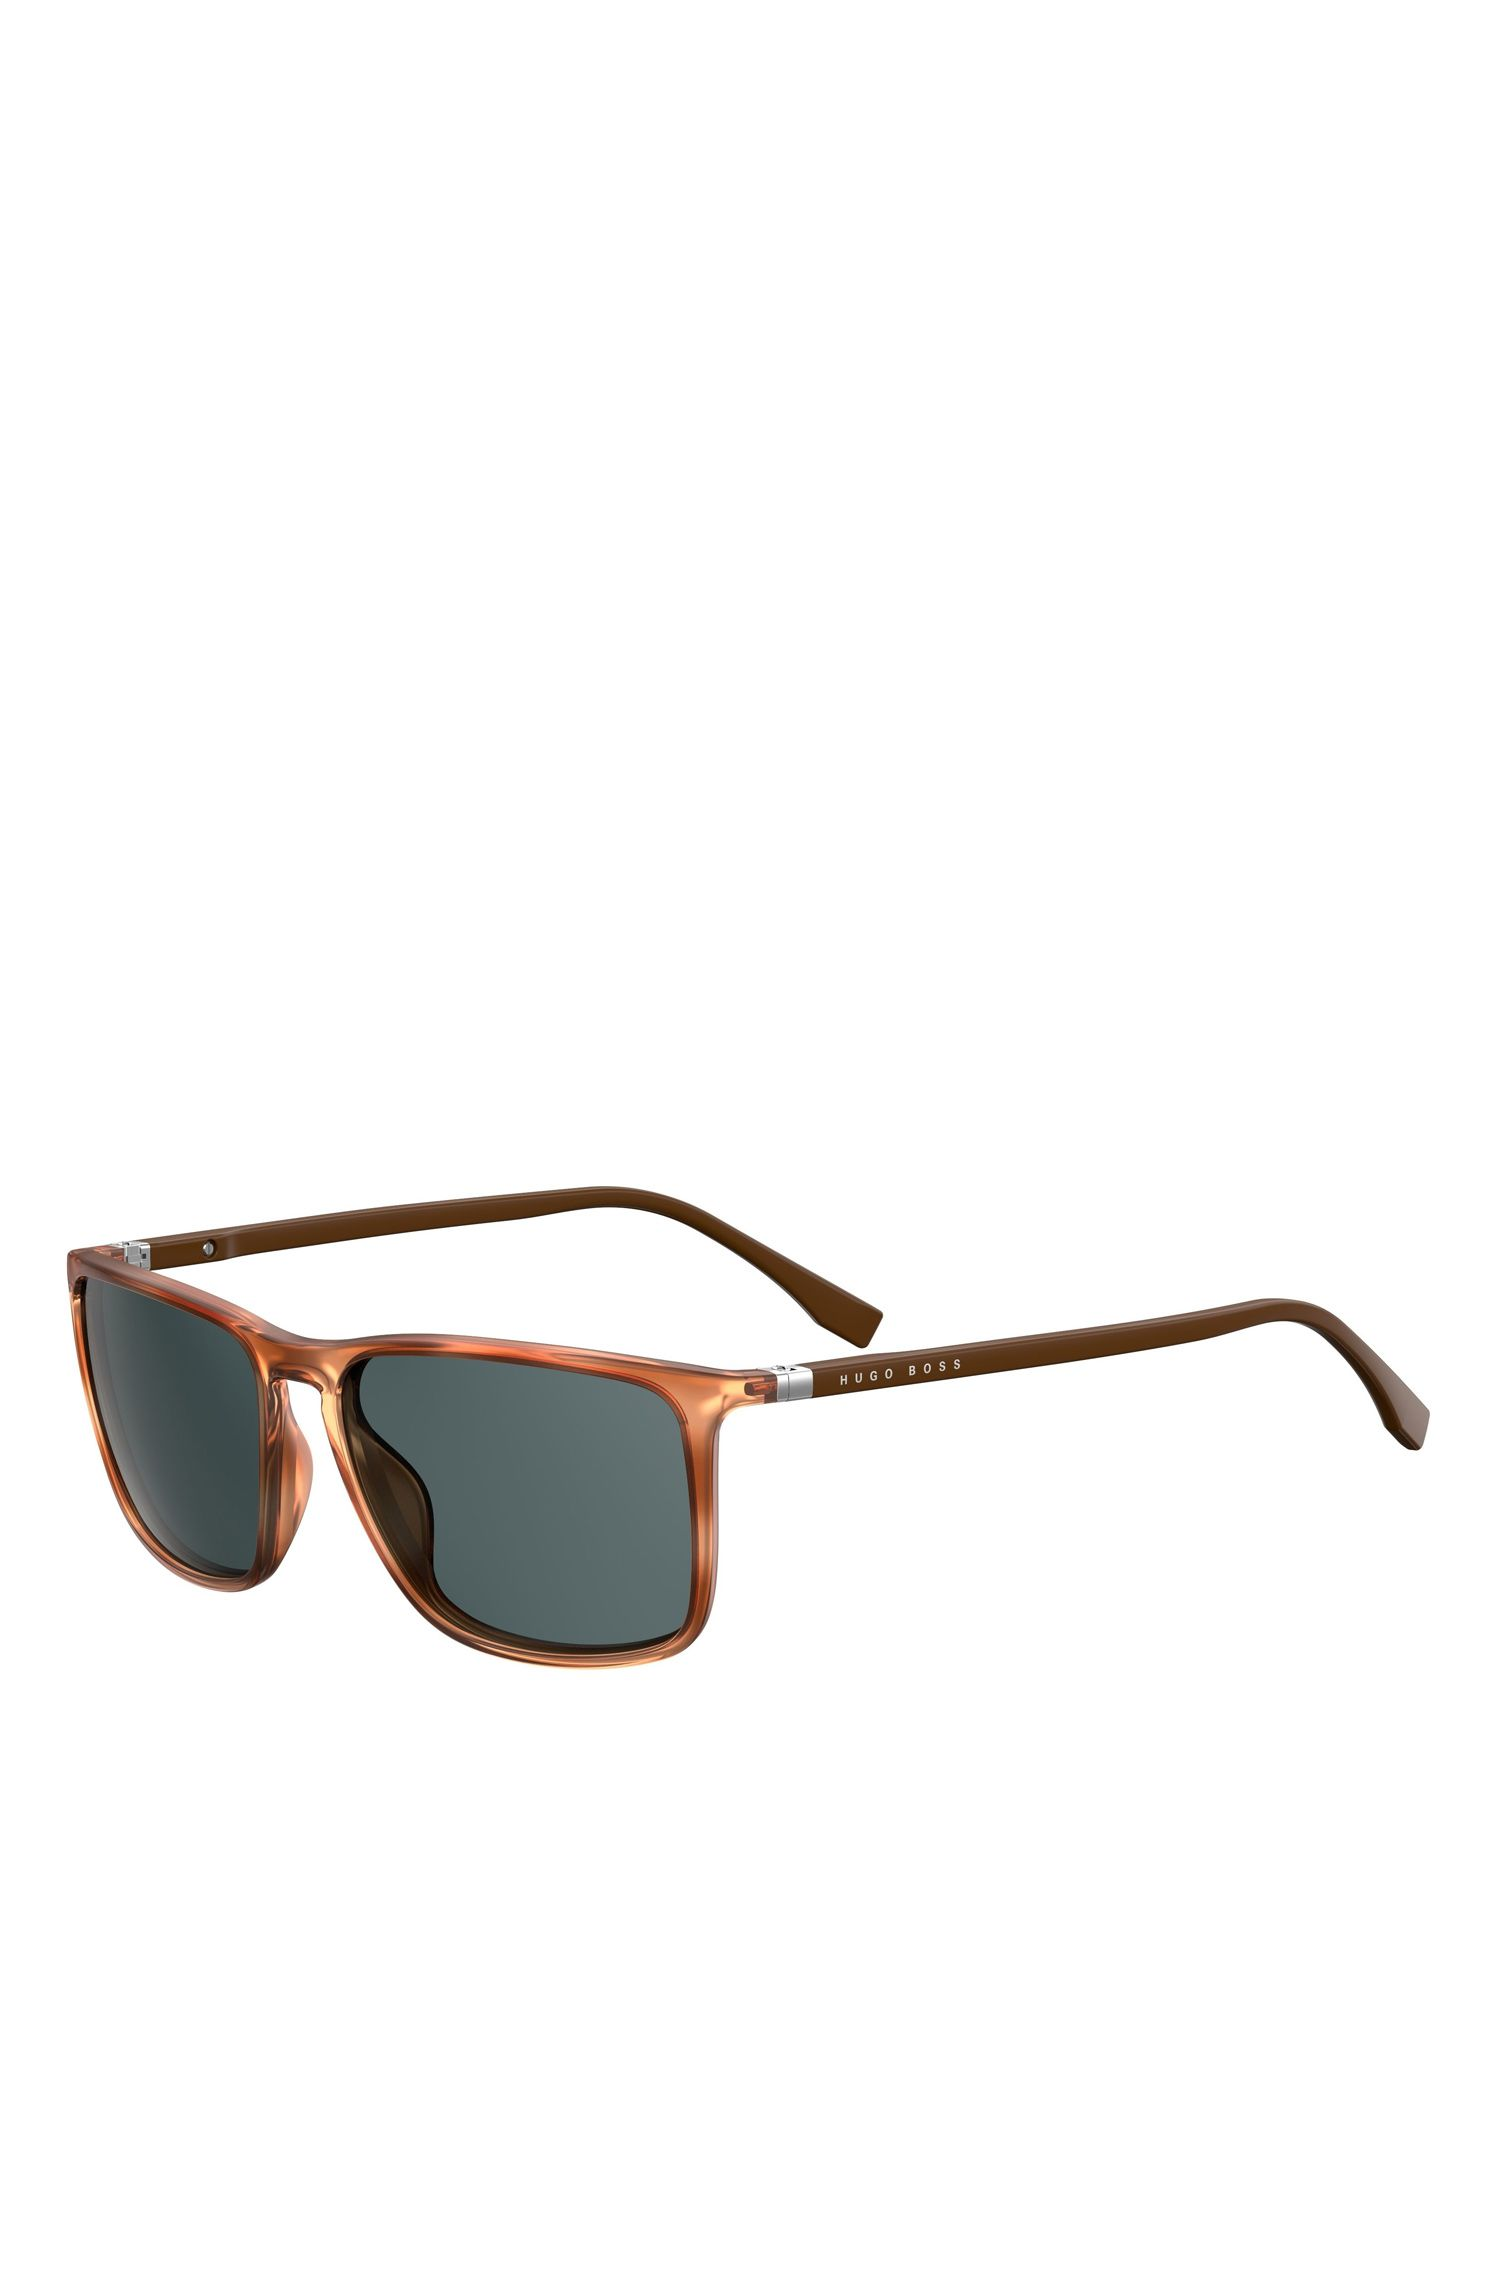 Grey Lens Rectangular Sunglasses | BOSS 0665S